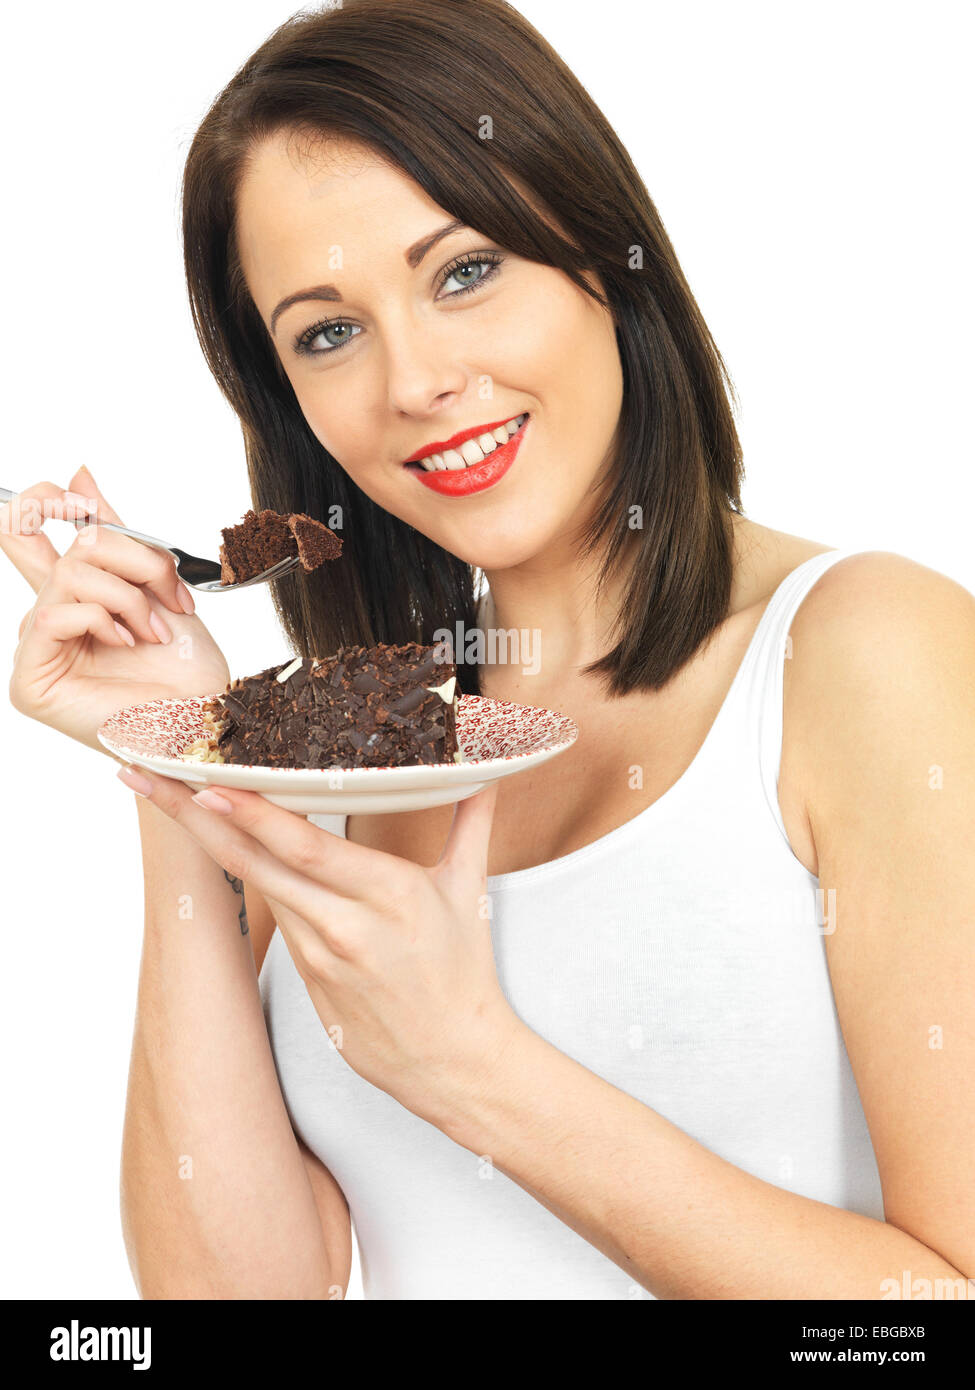 Attractive Twenty Something Young Woman Eating Chocolate Cake - Stock Image